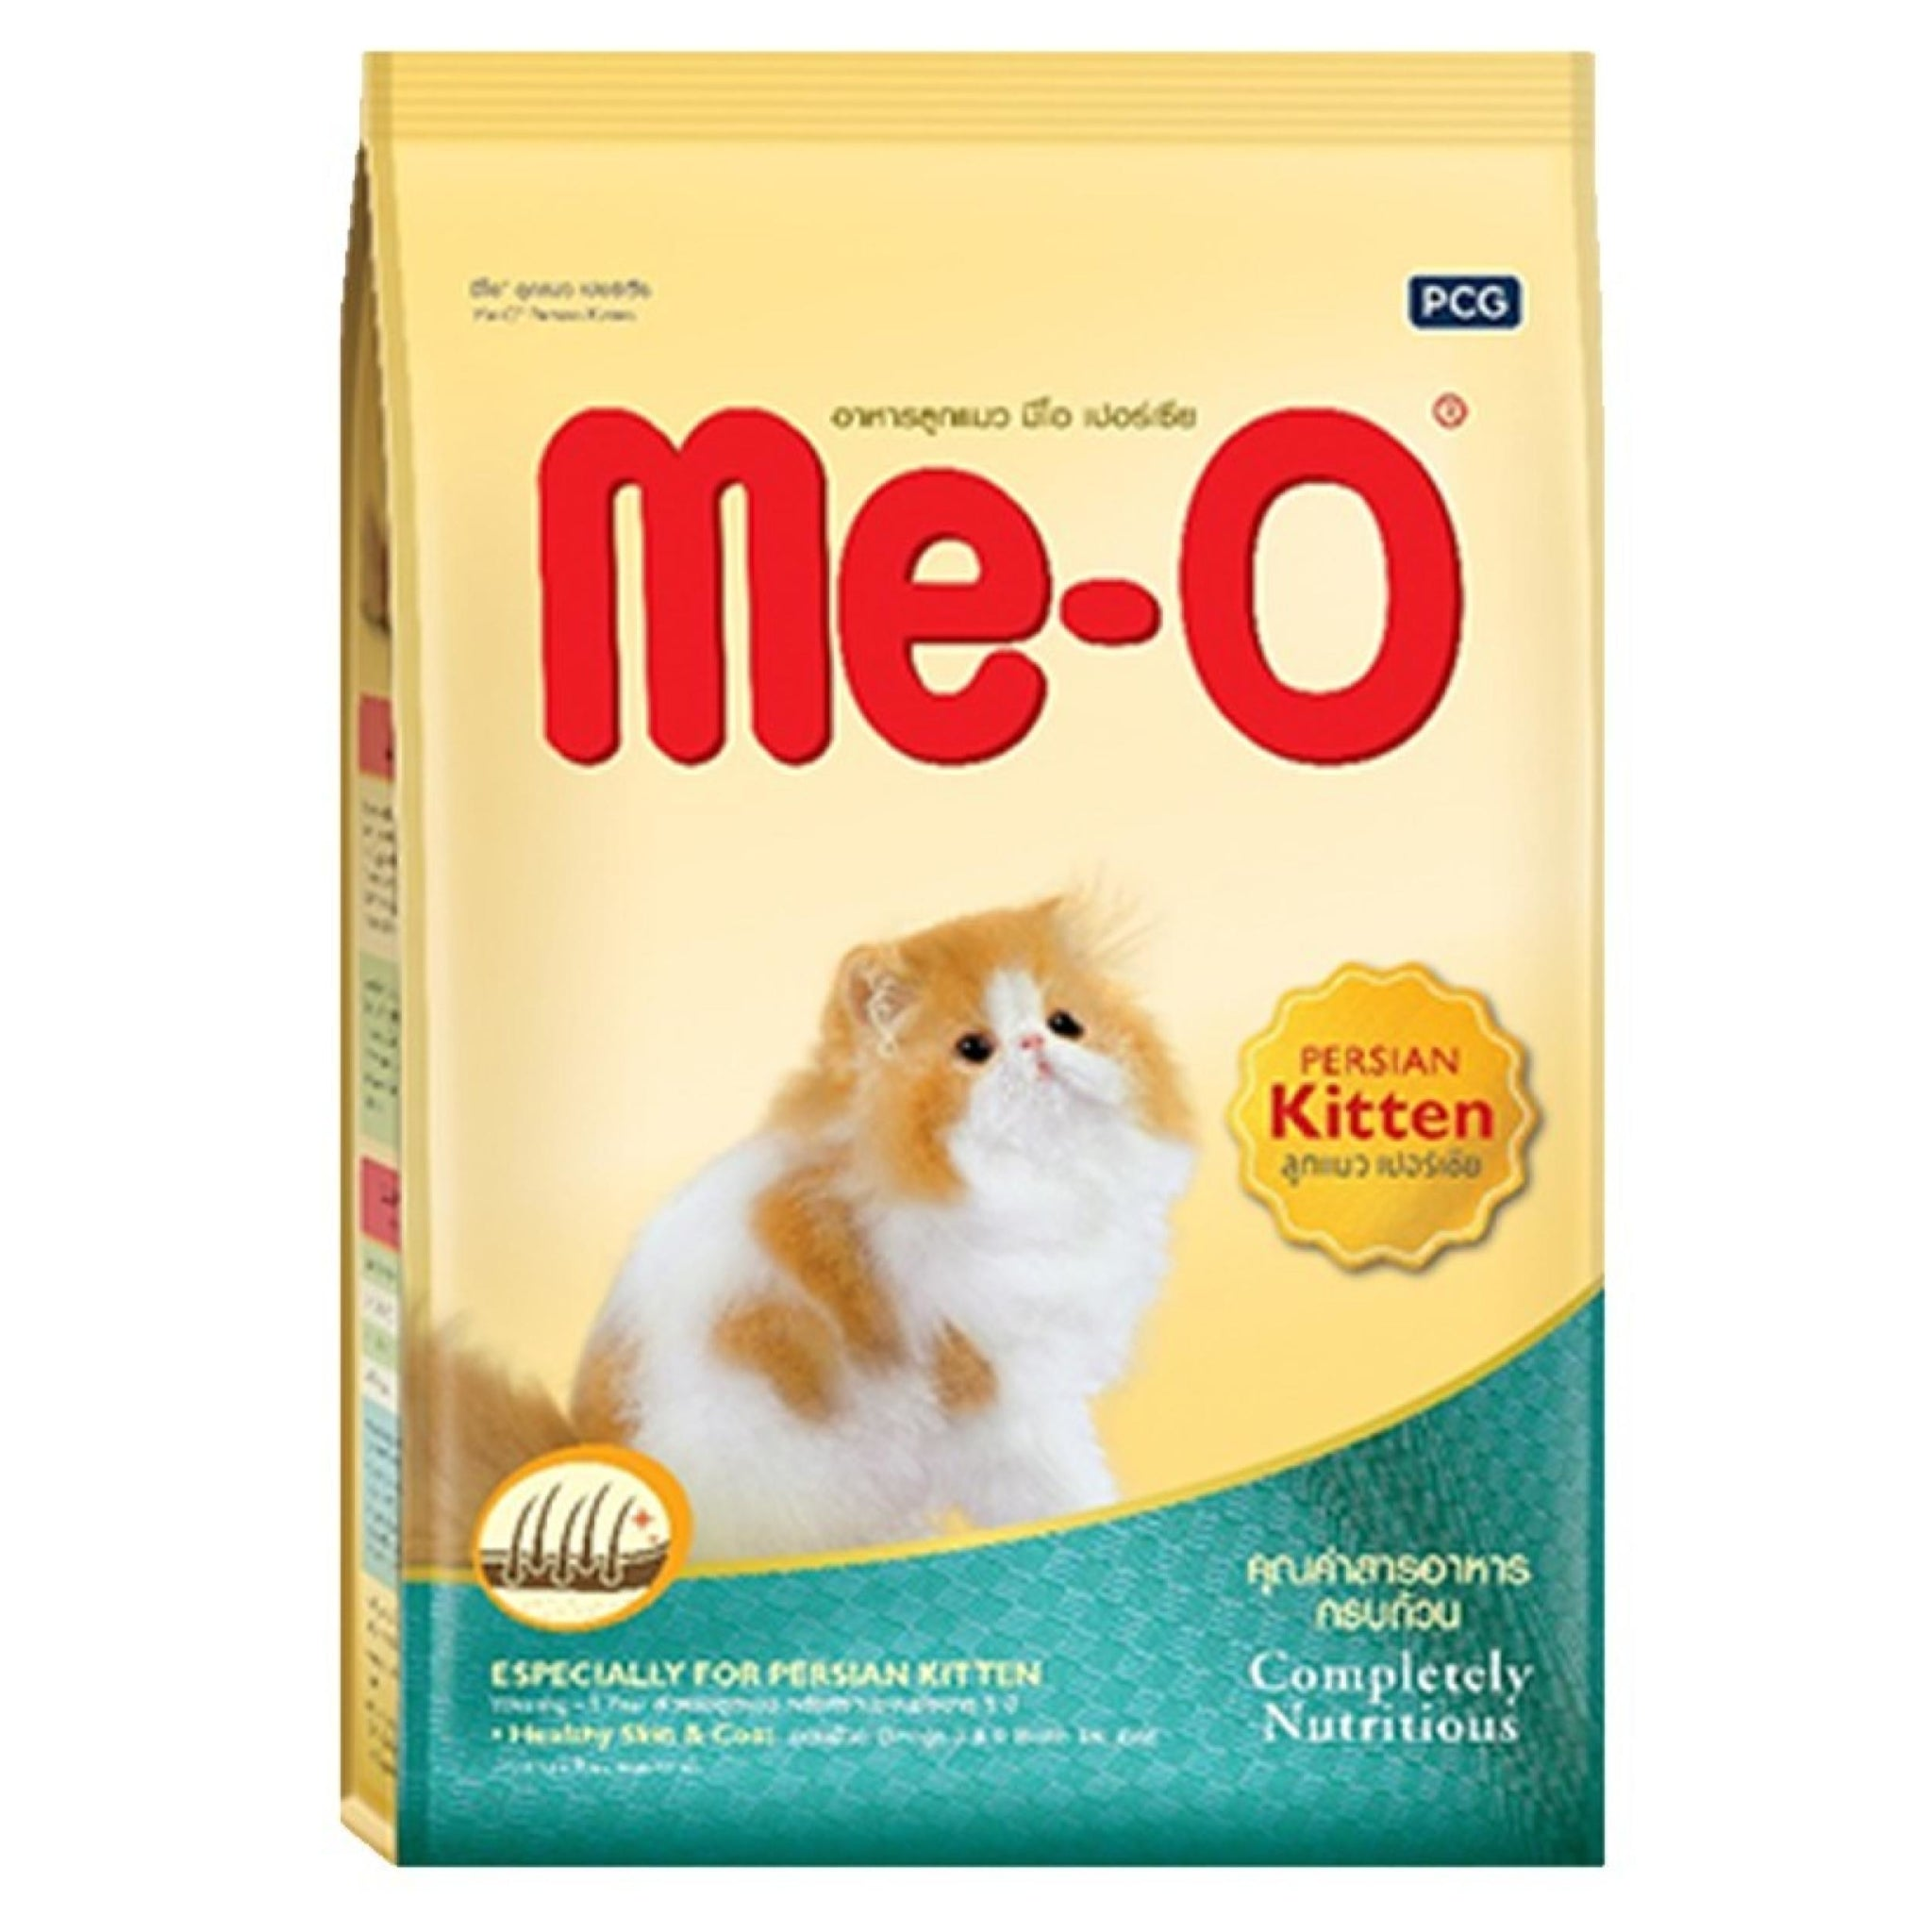 MeO Persian Kitten Food - Poochles